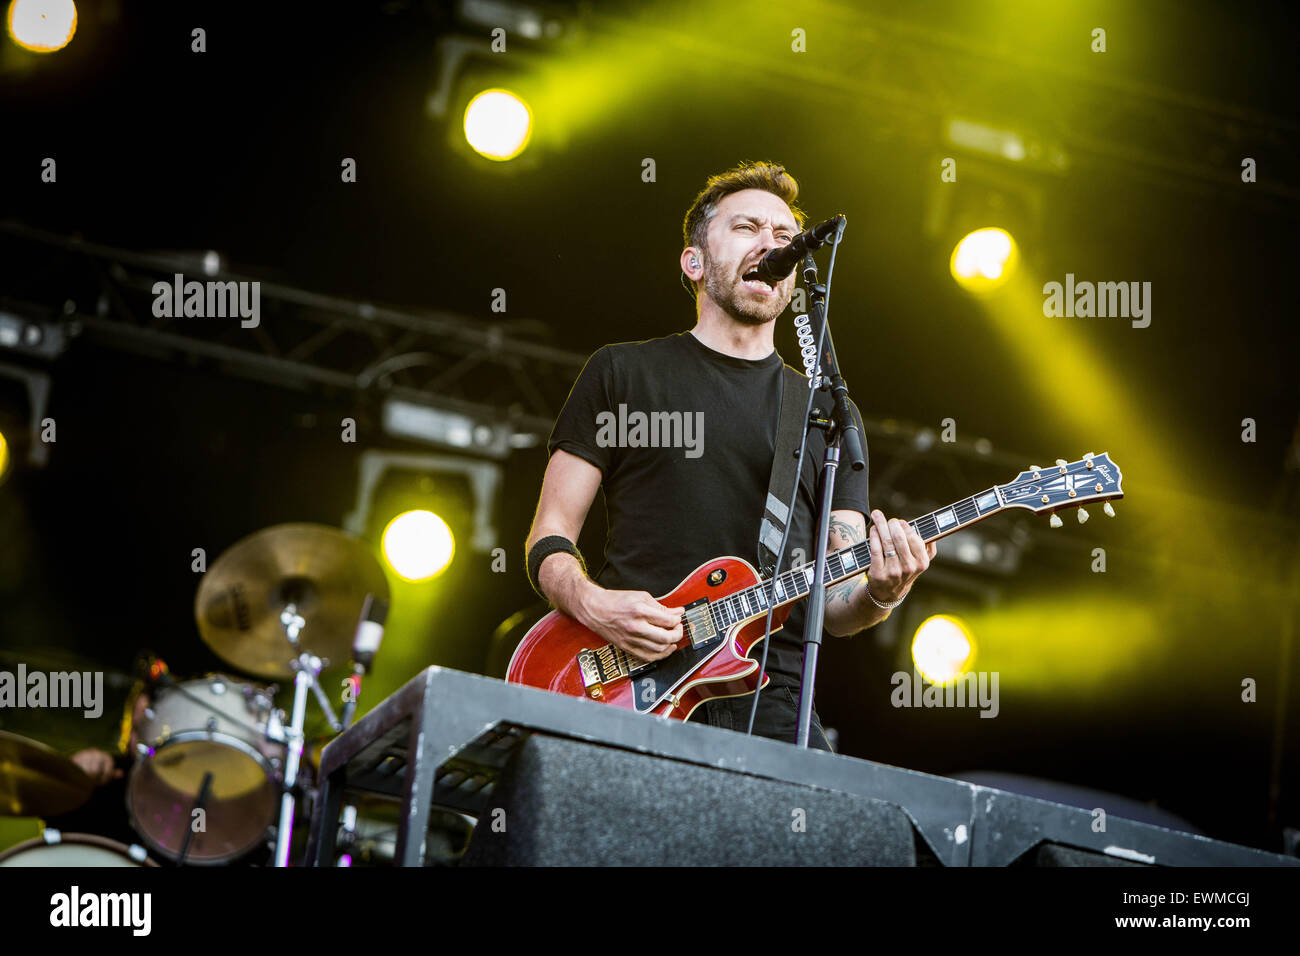 Rise Against perform live at Pinkpop Festival 2015 in Landgraaf Netherlands © Roberto Finizio/Alamy Live News - Stock Image